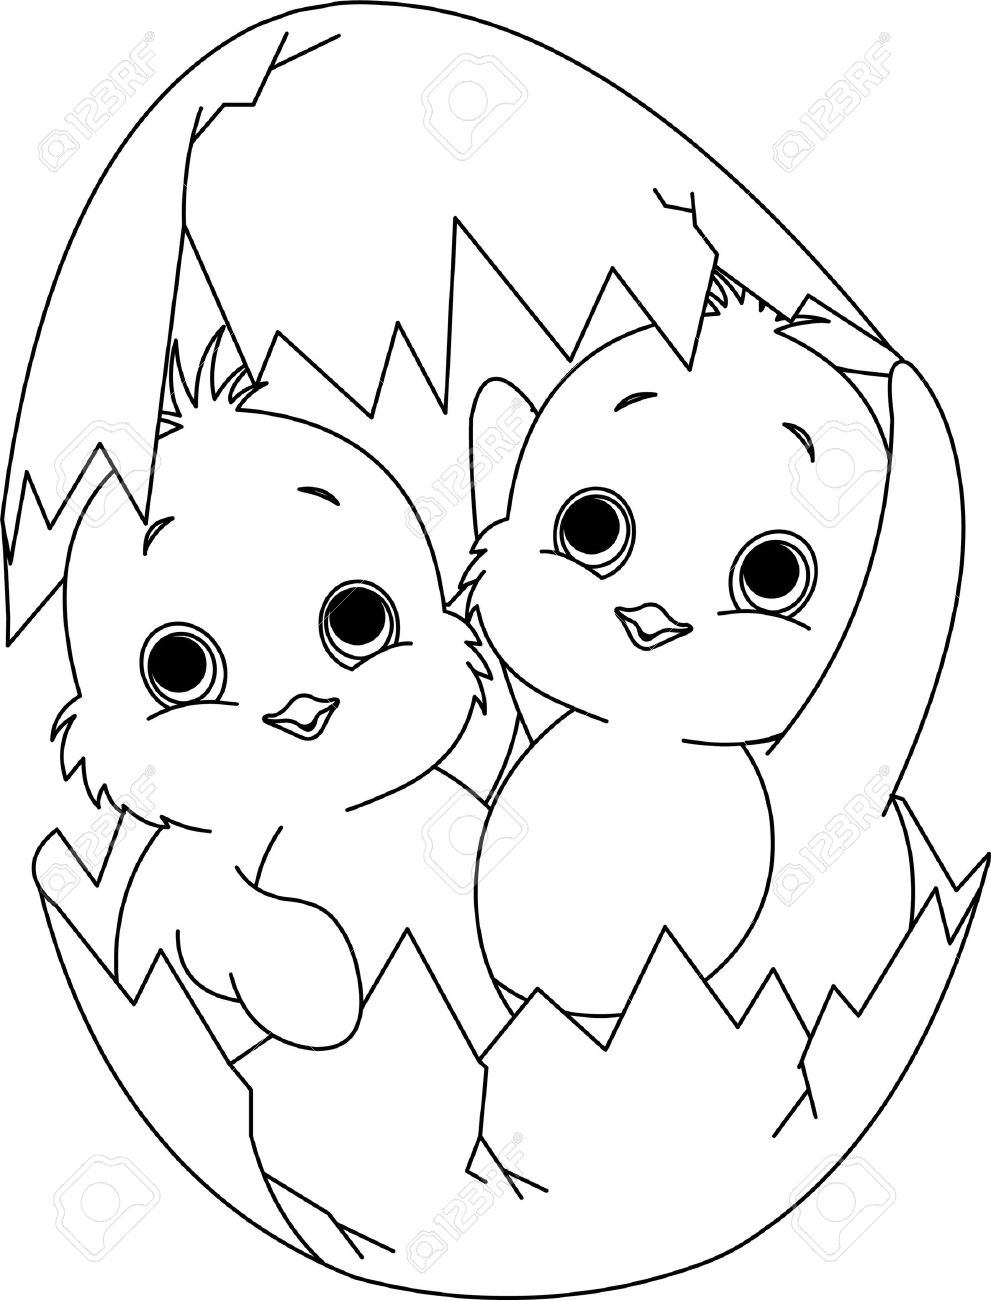 Two Easter Chickens Hatched From One Egg Coloring Page Royalty Free